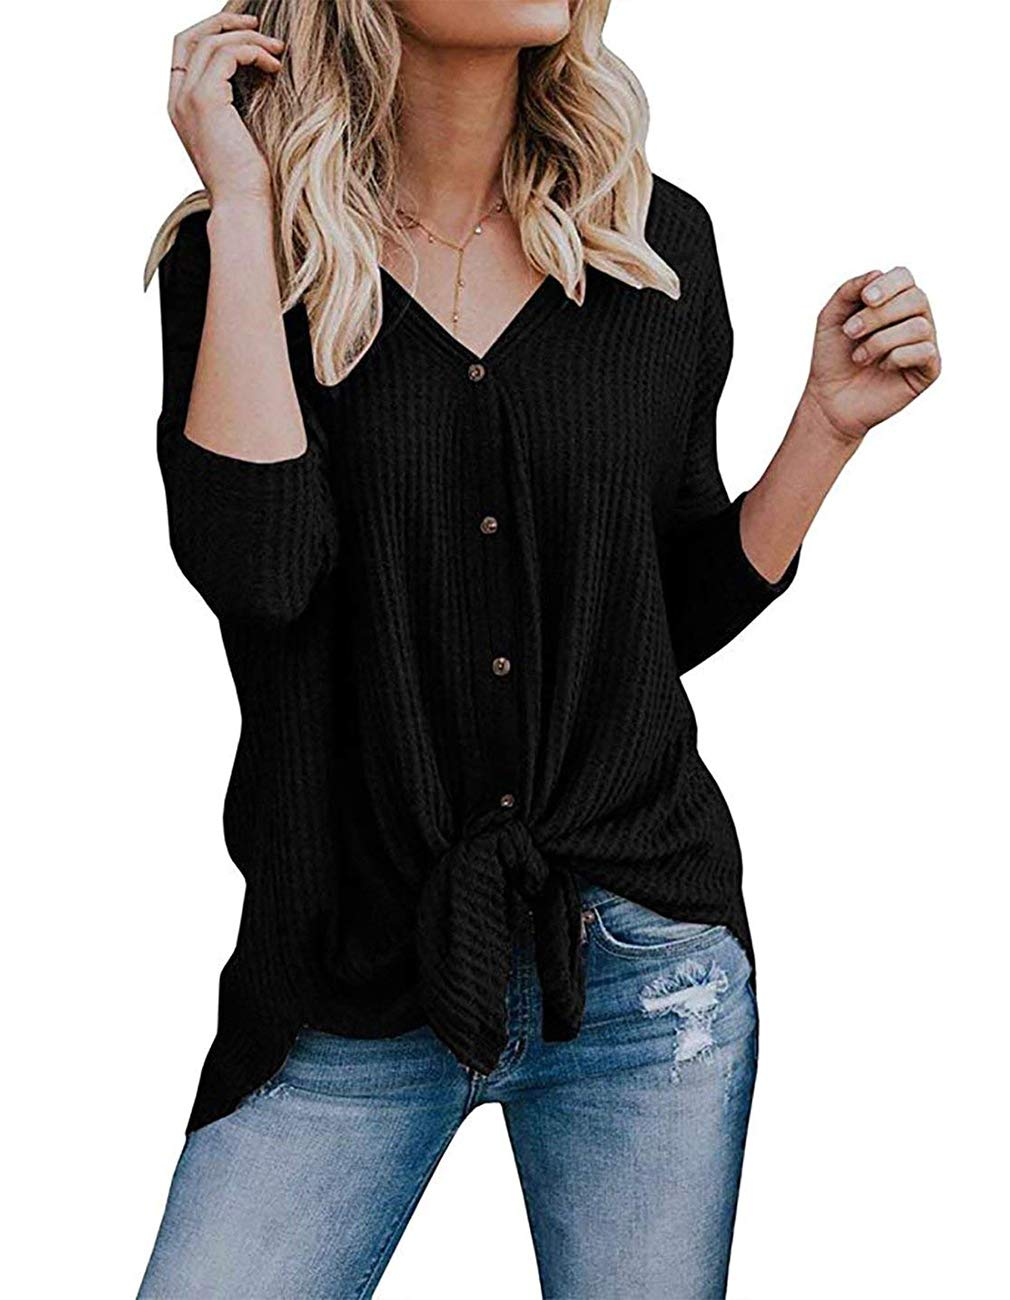 Miskely Women's Waffle Knit Tunic Tops Tie Knot Henley Tops Blouse Casual Loose Bat Wing Plain Shirts (Small, Black)